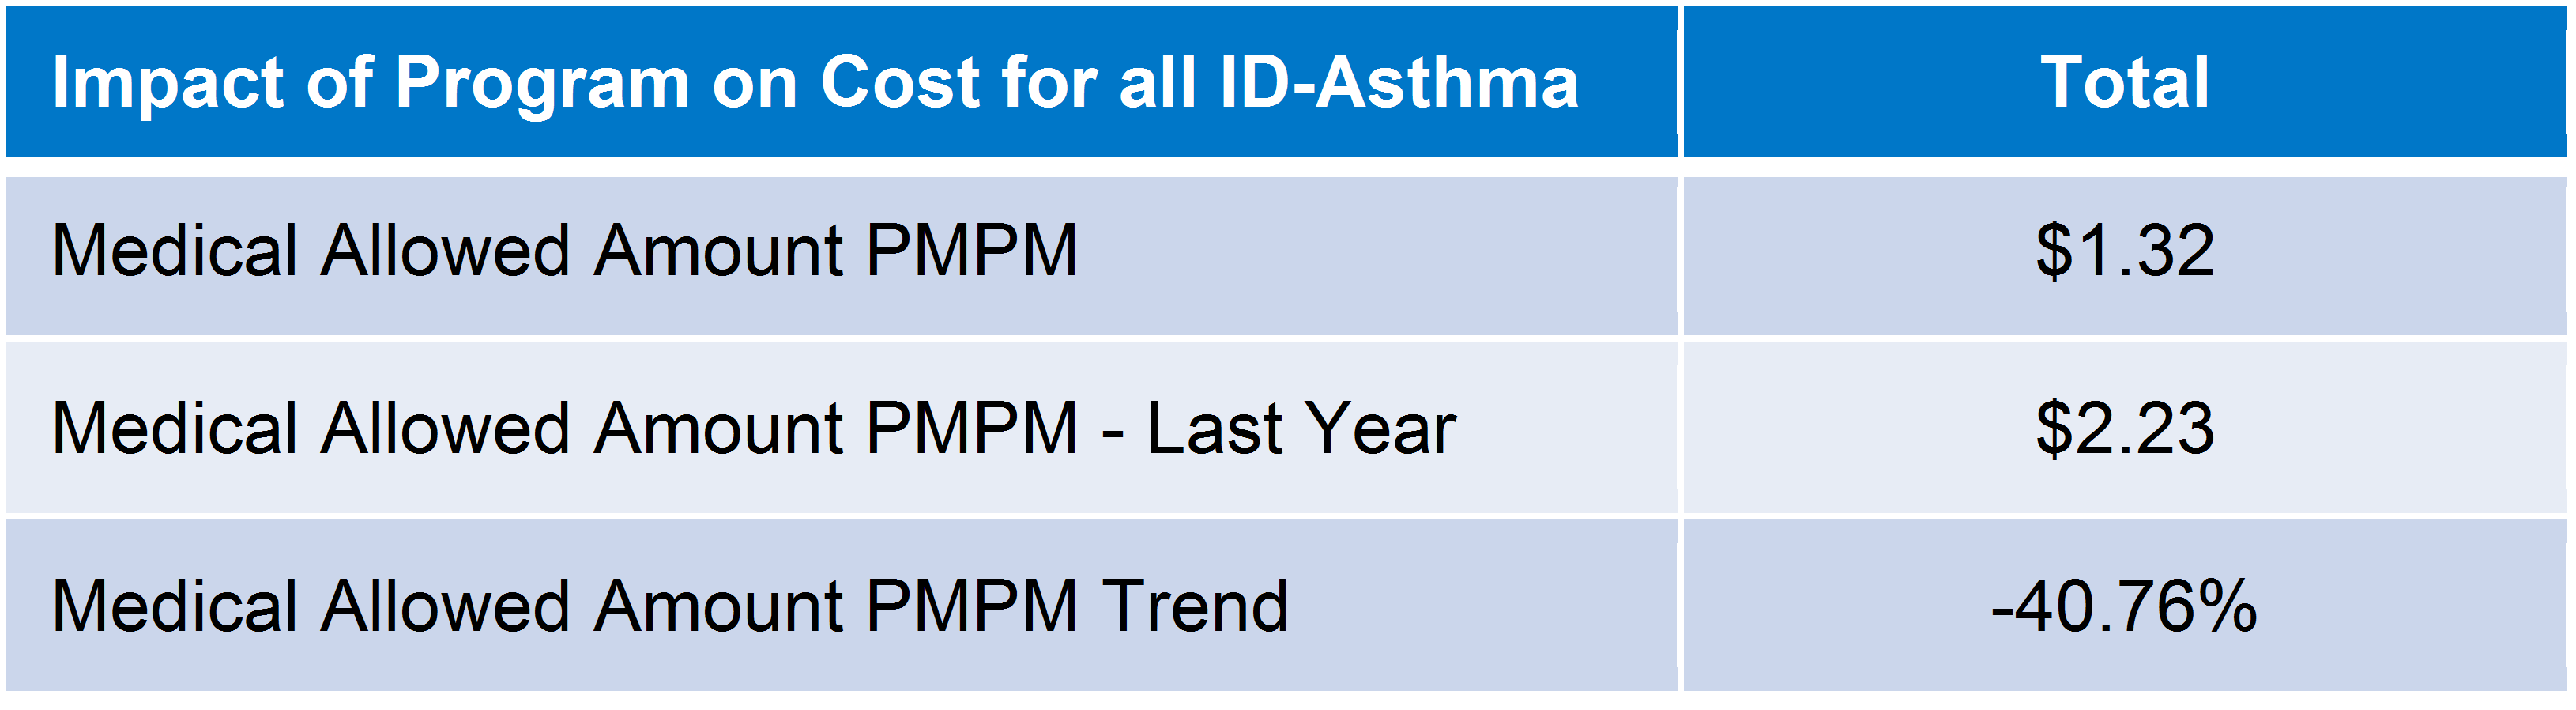 Impact of Program on Cost for all ID-Asthma